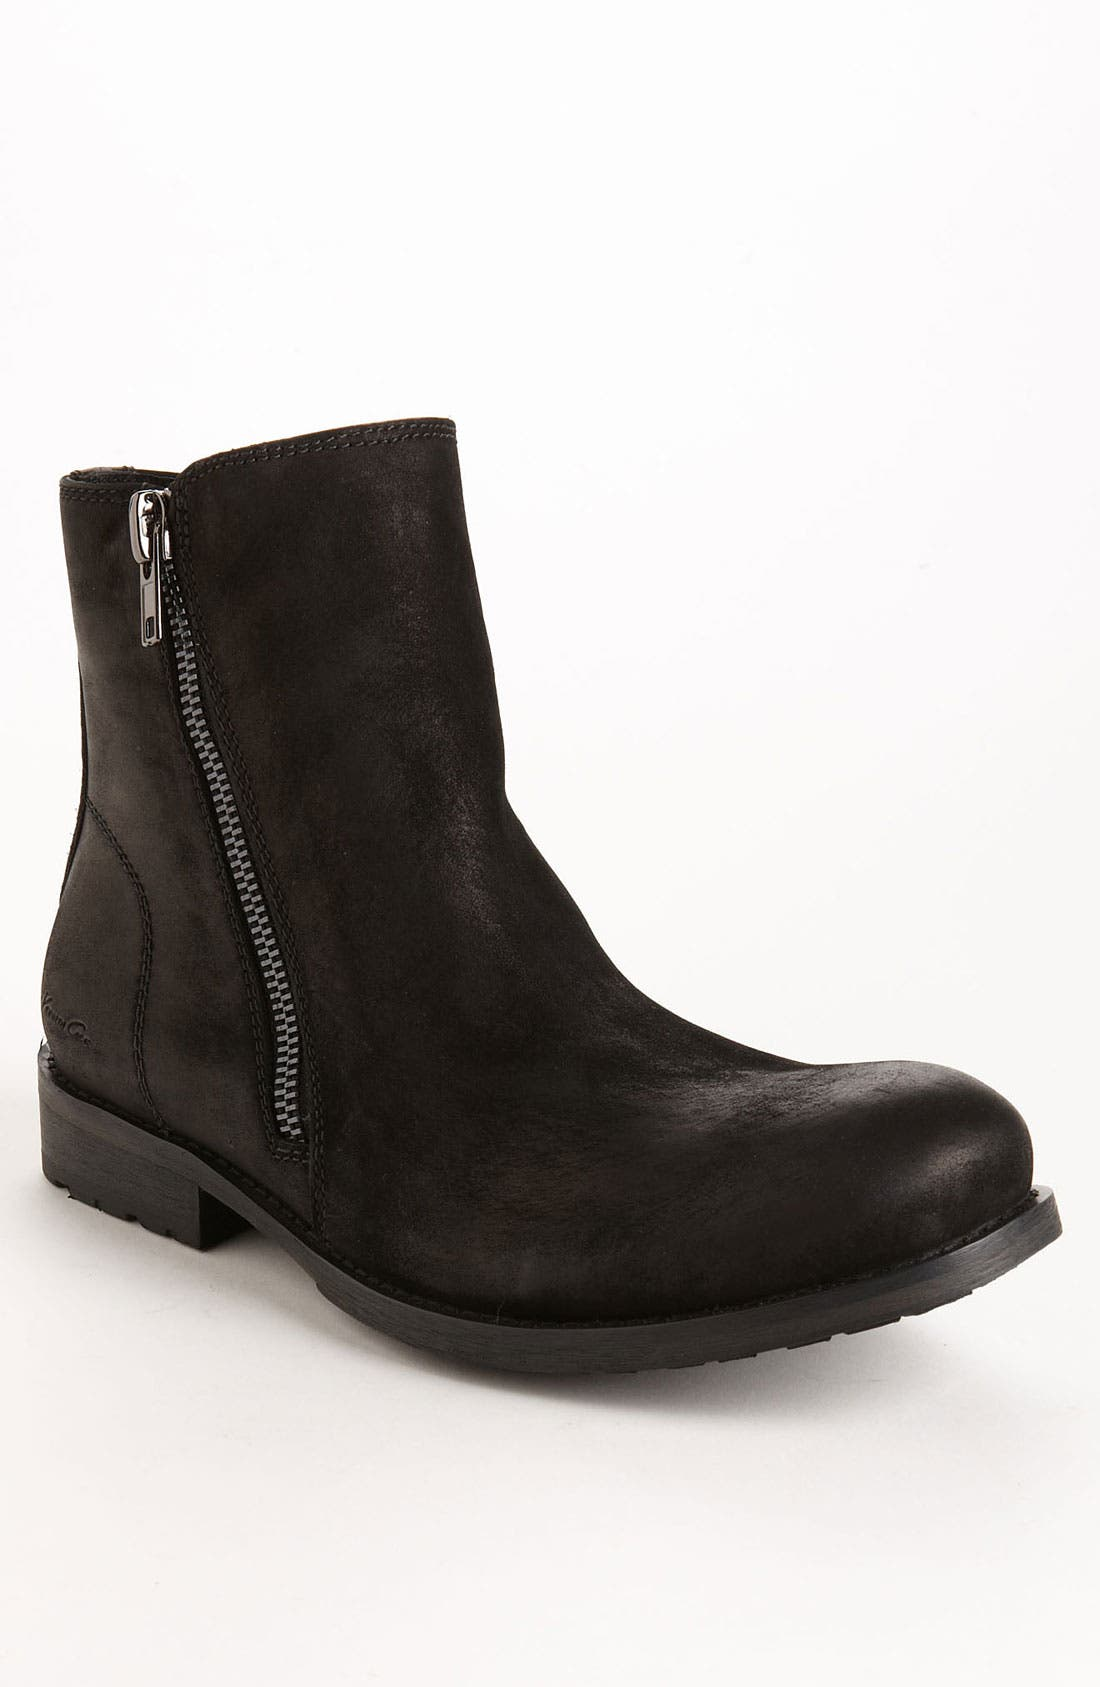 Alternate Image 1 Selected - Kenneth Cole New York 'An-arc-hy' Boot